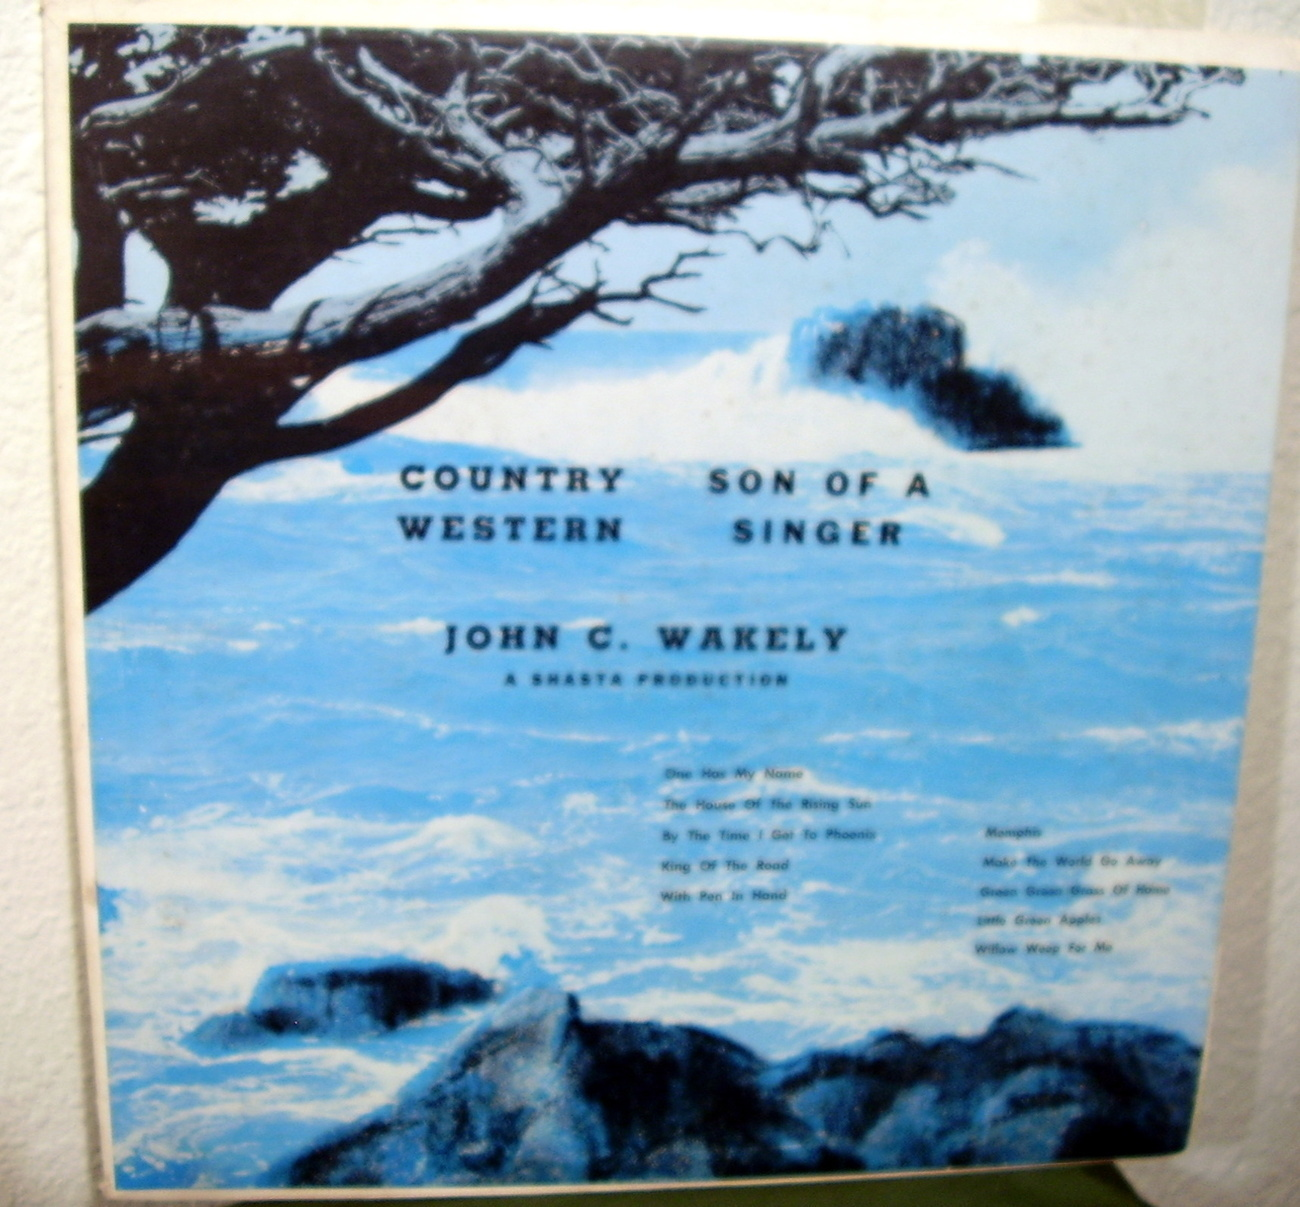 John C. Wakely Country Son of A Western Singer LP